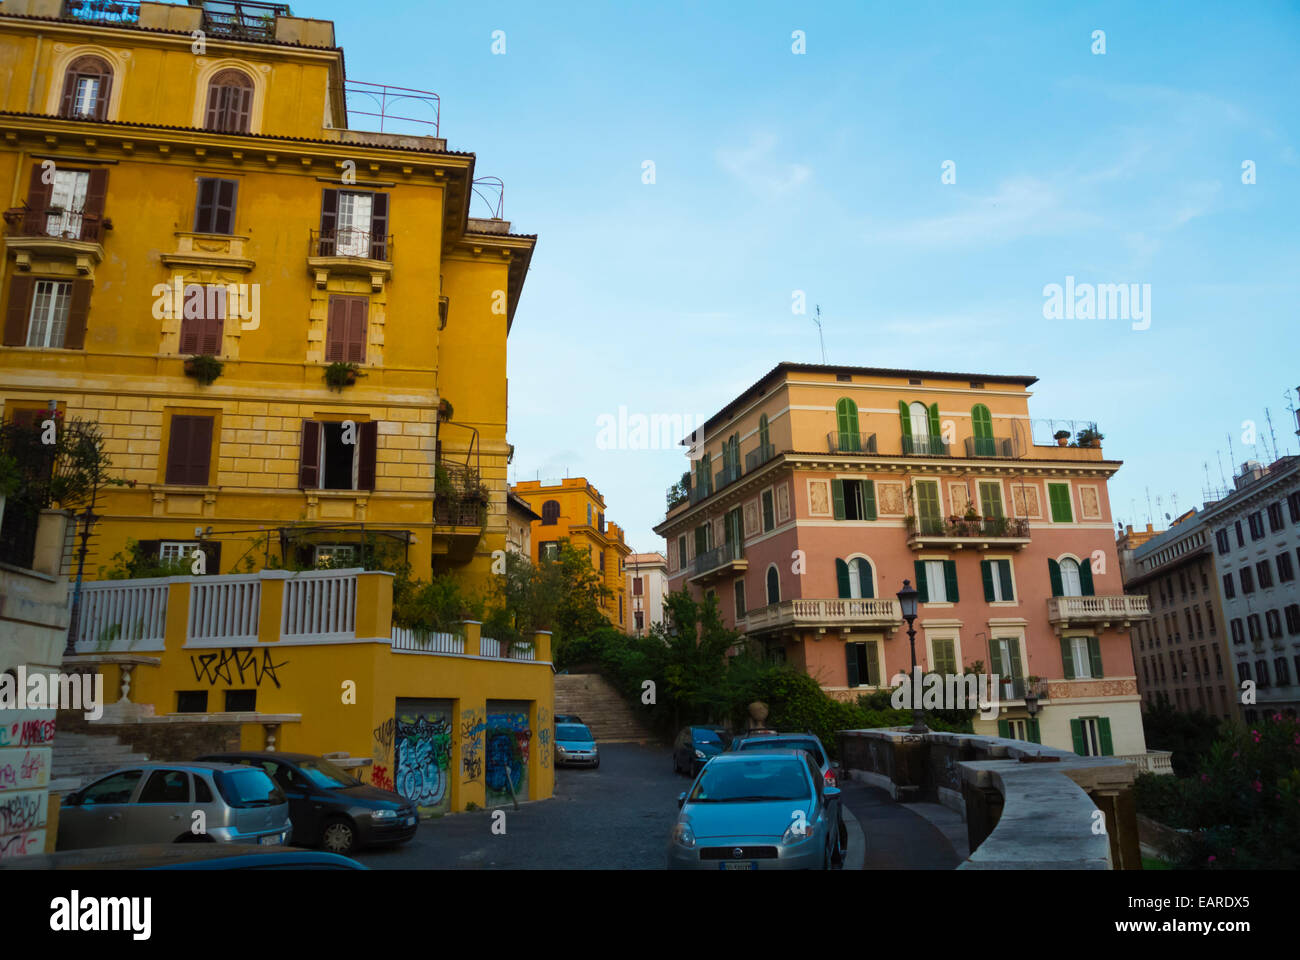 Residential neighbourghood, Monti district, central Rome, Italy - Stock Image